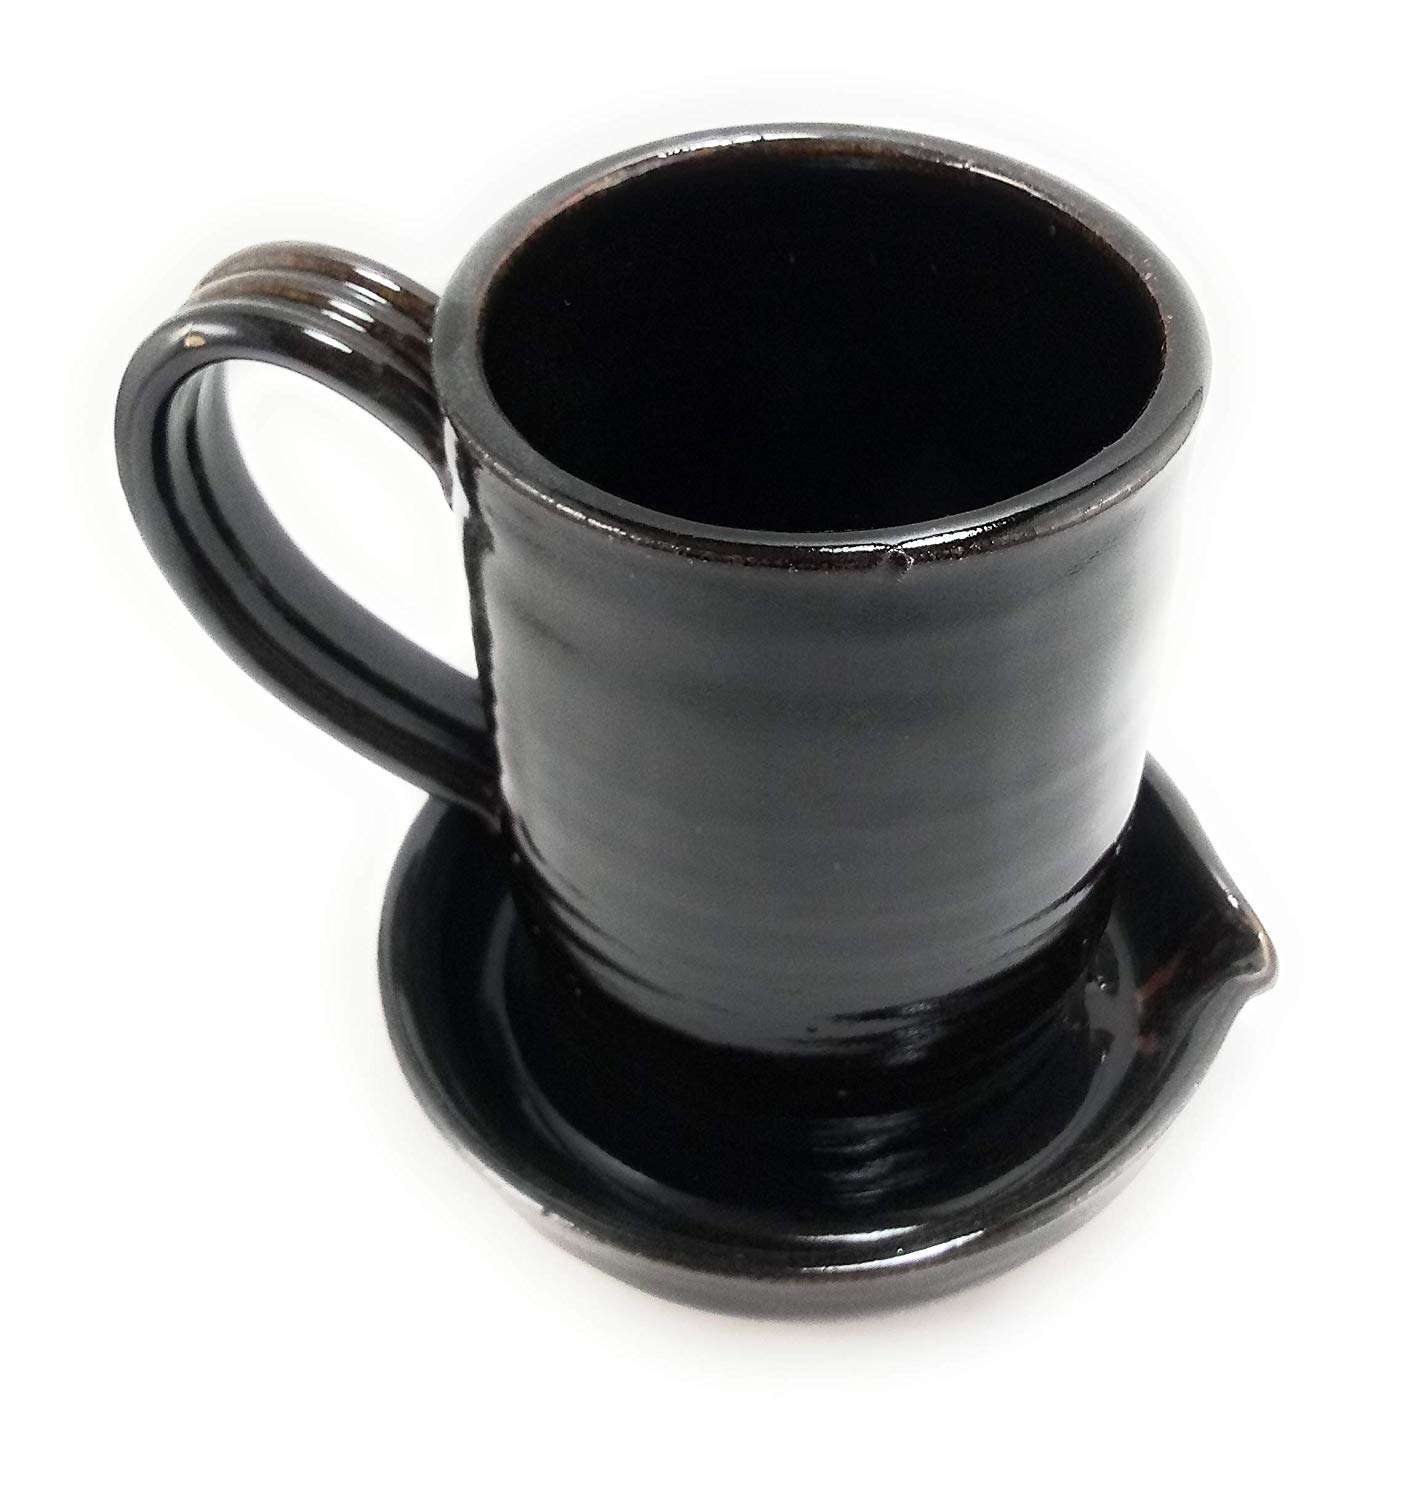 Aunt Chris' Pottery - Heavy Hand Made - Bacon Cooker - Glazed Dark Brown - Unique New Way of Cooking Bacon - Microwave, Oven And Dishwasher Safe - Easy Clean Up - Great For Dorms, RV, Anywhere!